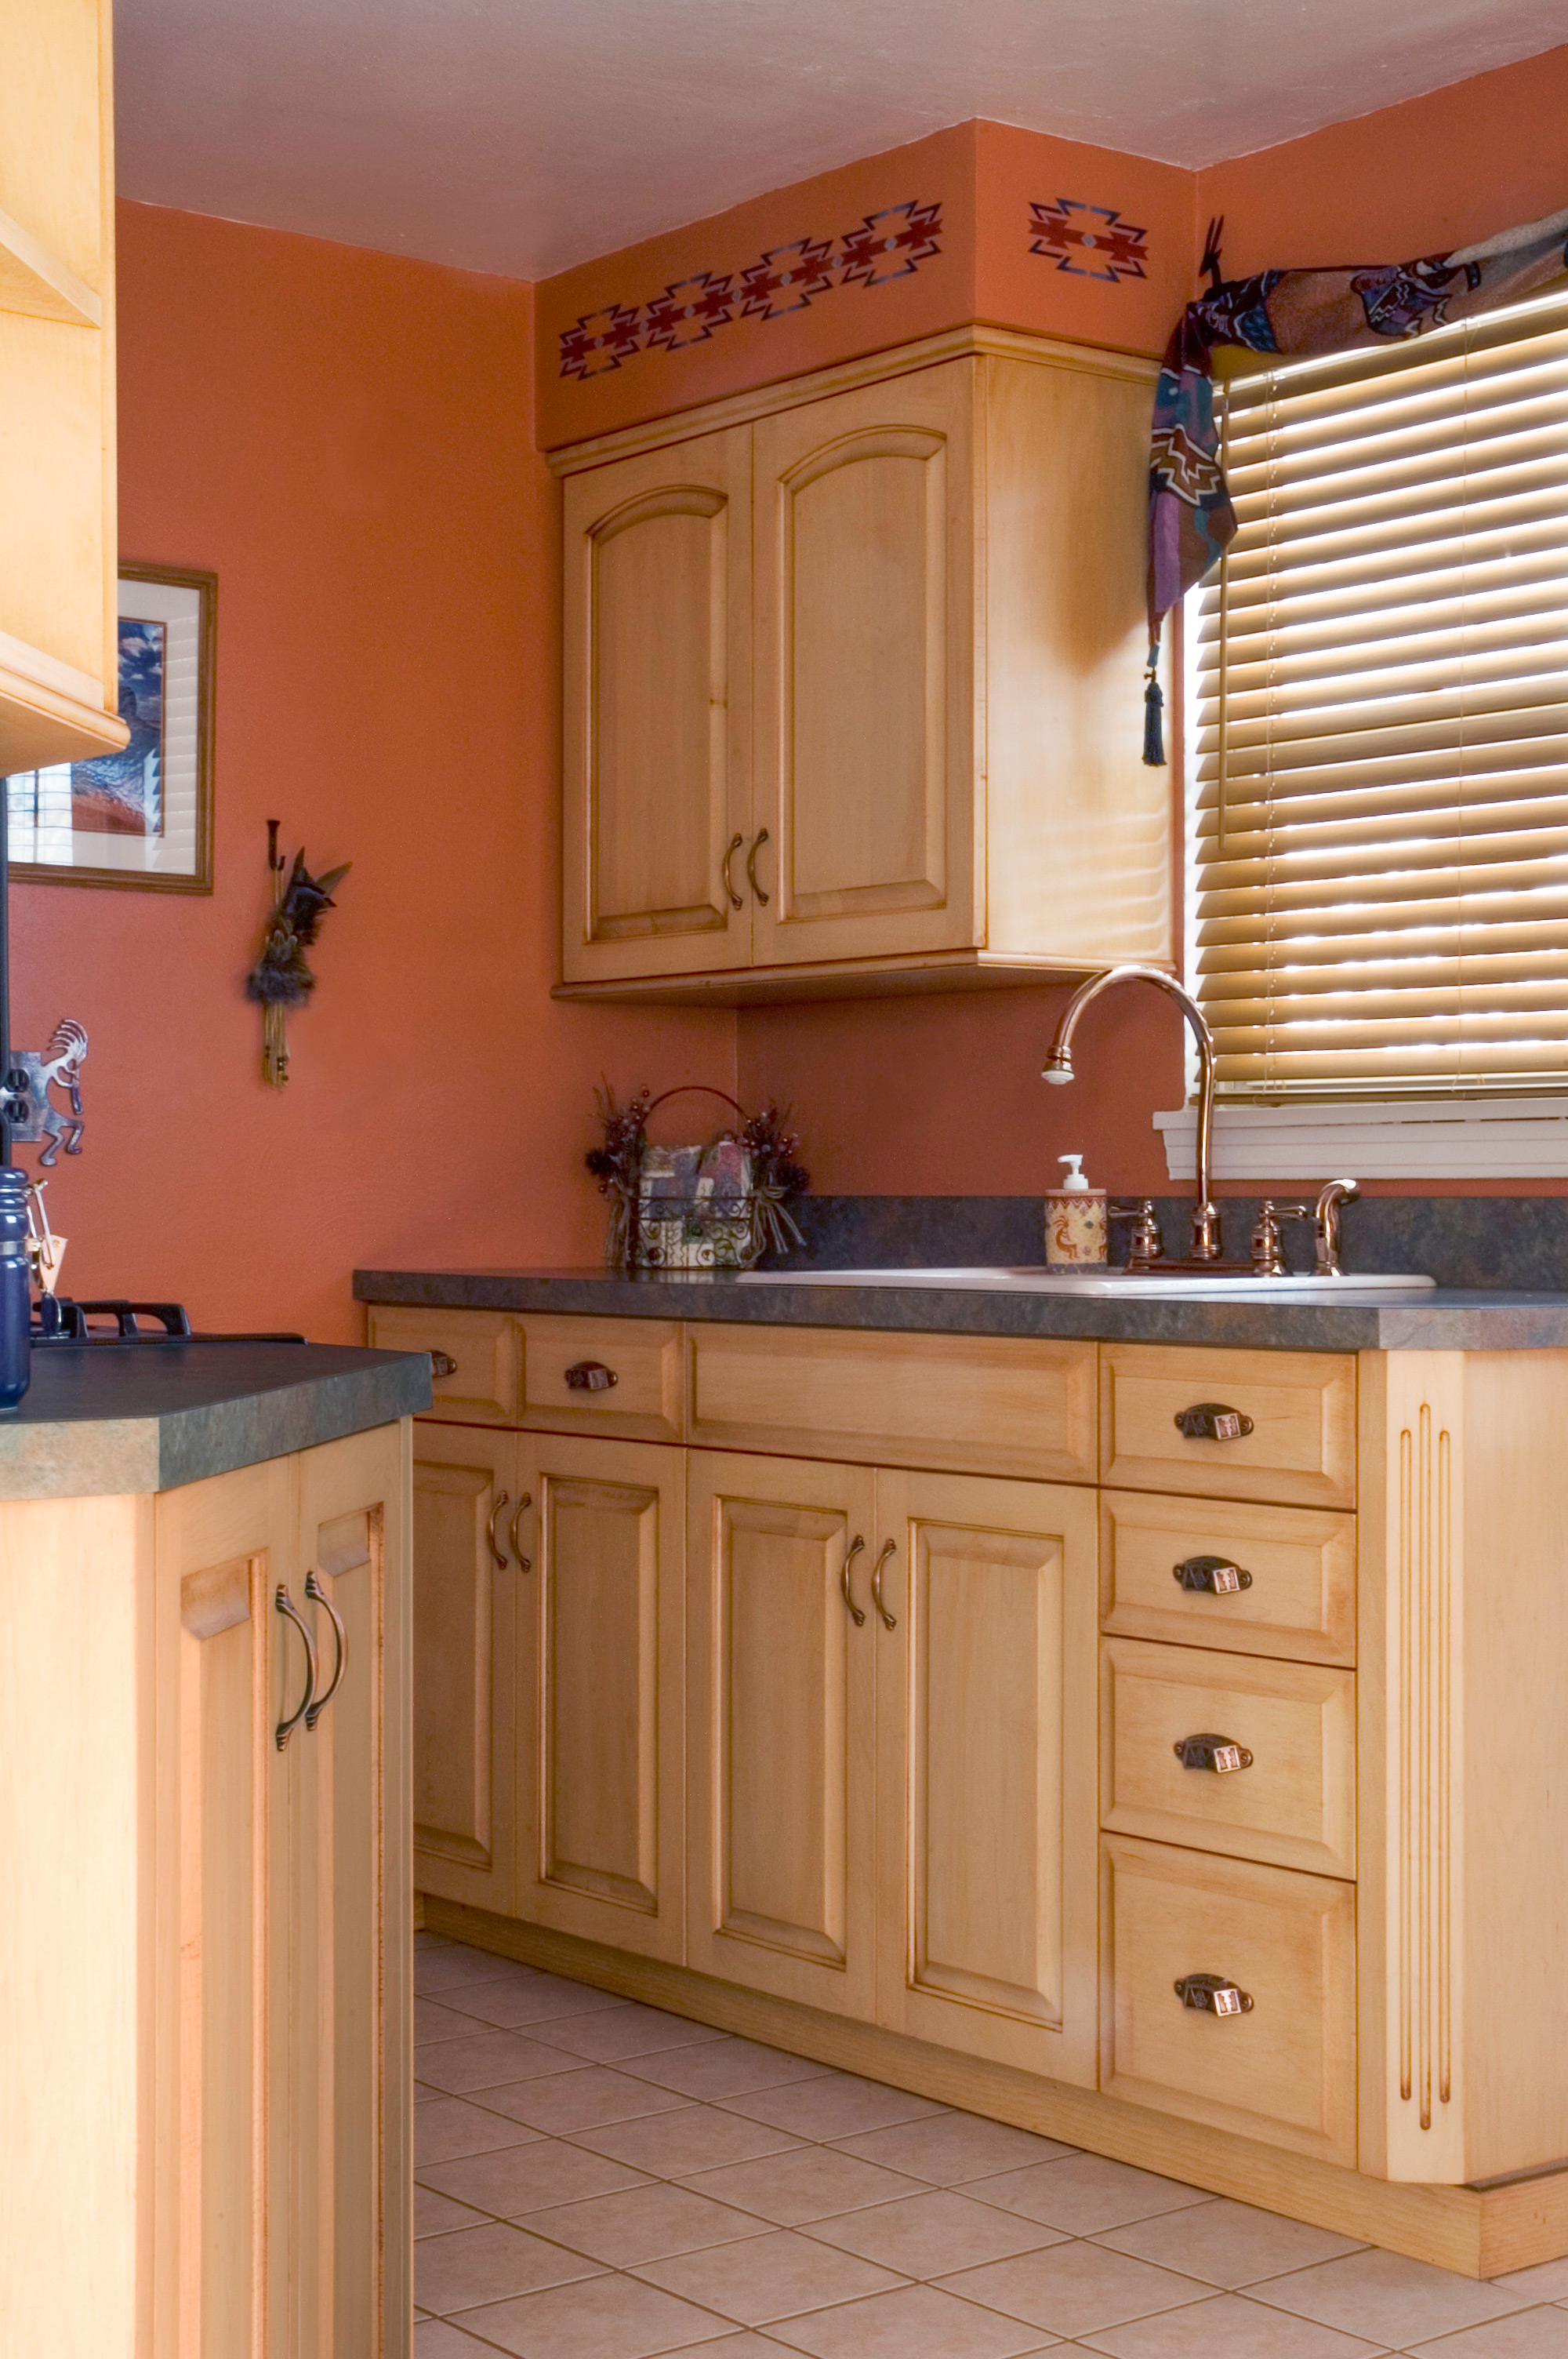 southwest kitchen contemporary island custom cabinetry by ken leech small with theme maple raised panel doors hand rubbing and glazing creates additional texture accent corner shelf fluted